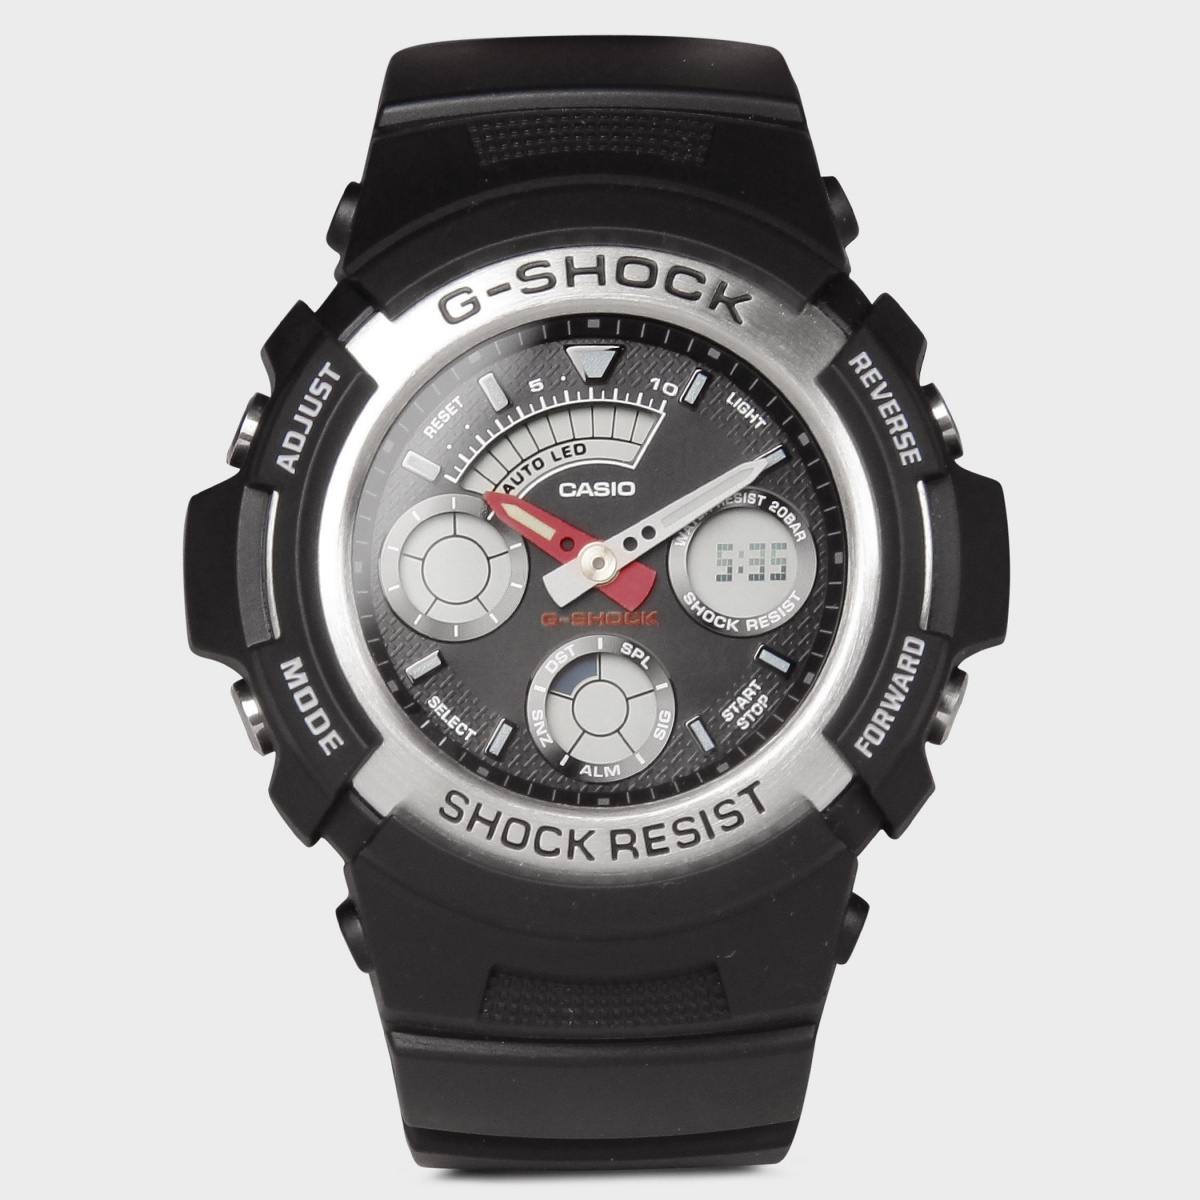 CASIO G-Shock Analog - Digital Watch G219